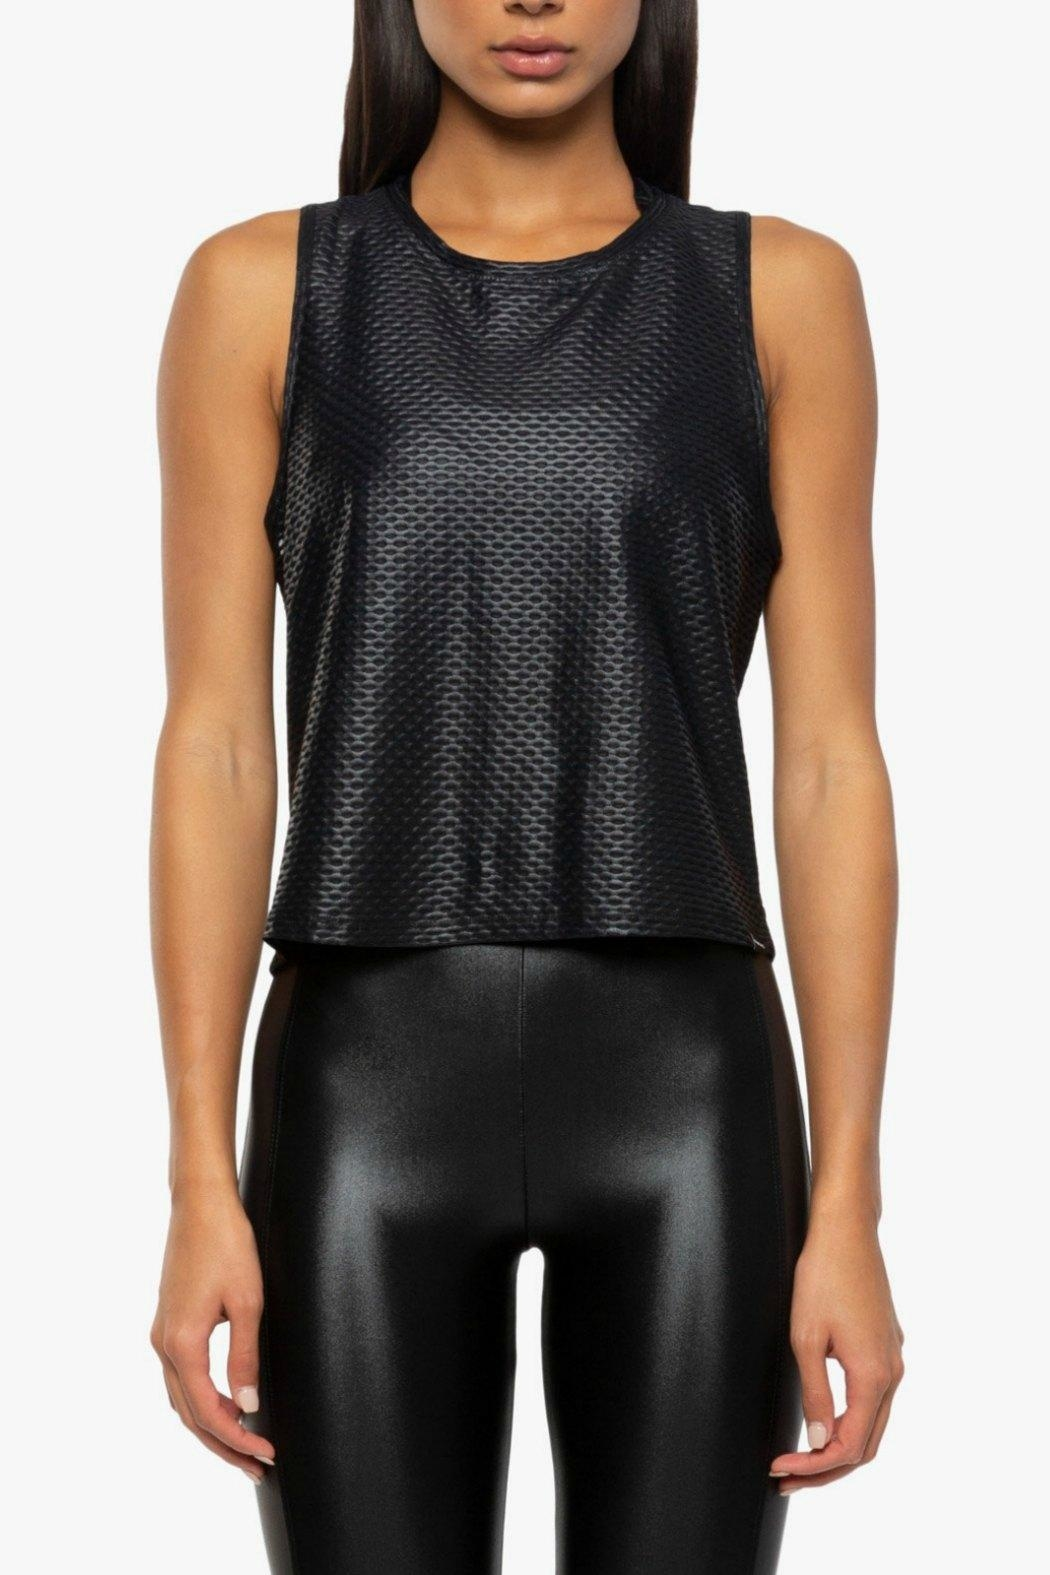 KORAL Muscle Shiny-Netz Tank - Front Cropped Image